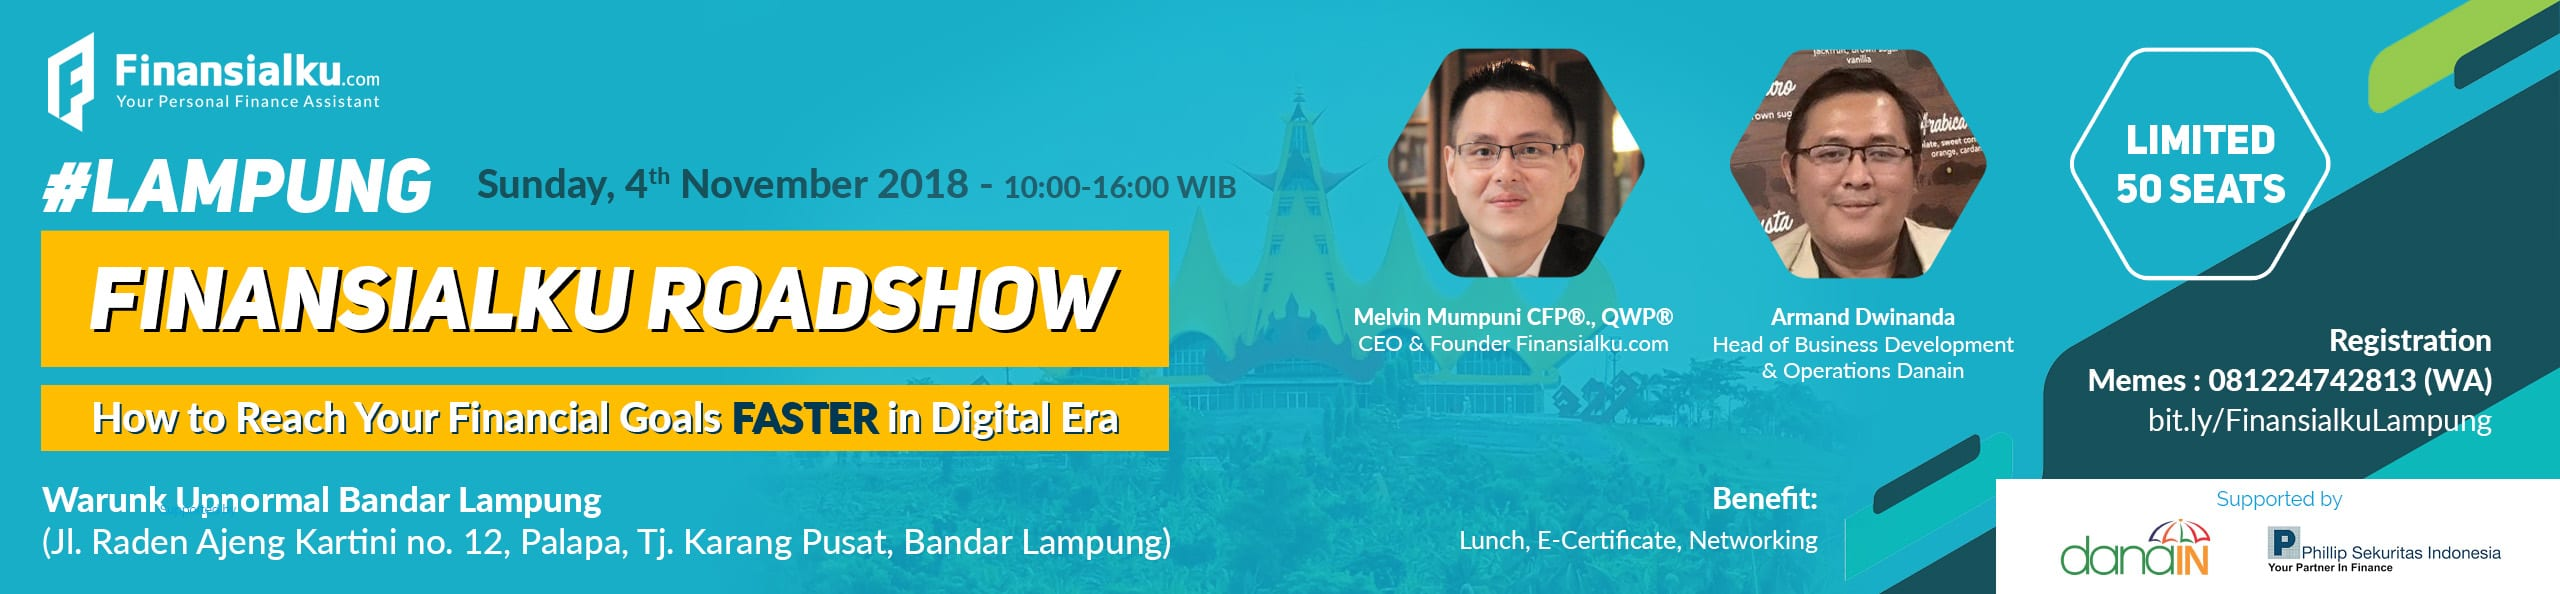 Event How to Reach Your Financial Goals Faster in Digital Era Lampung (2)